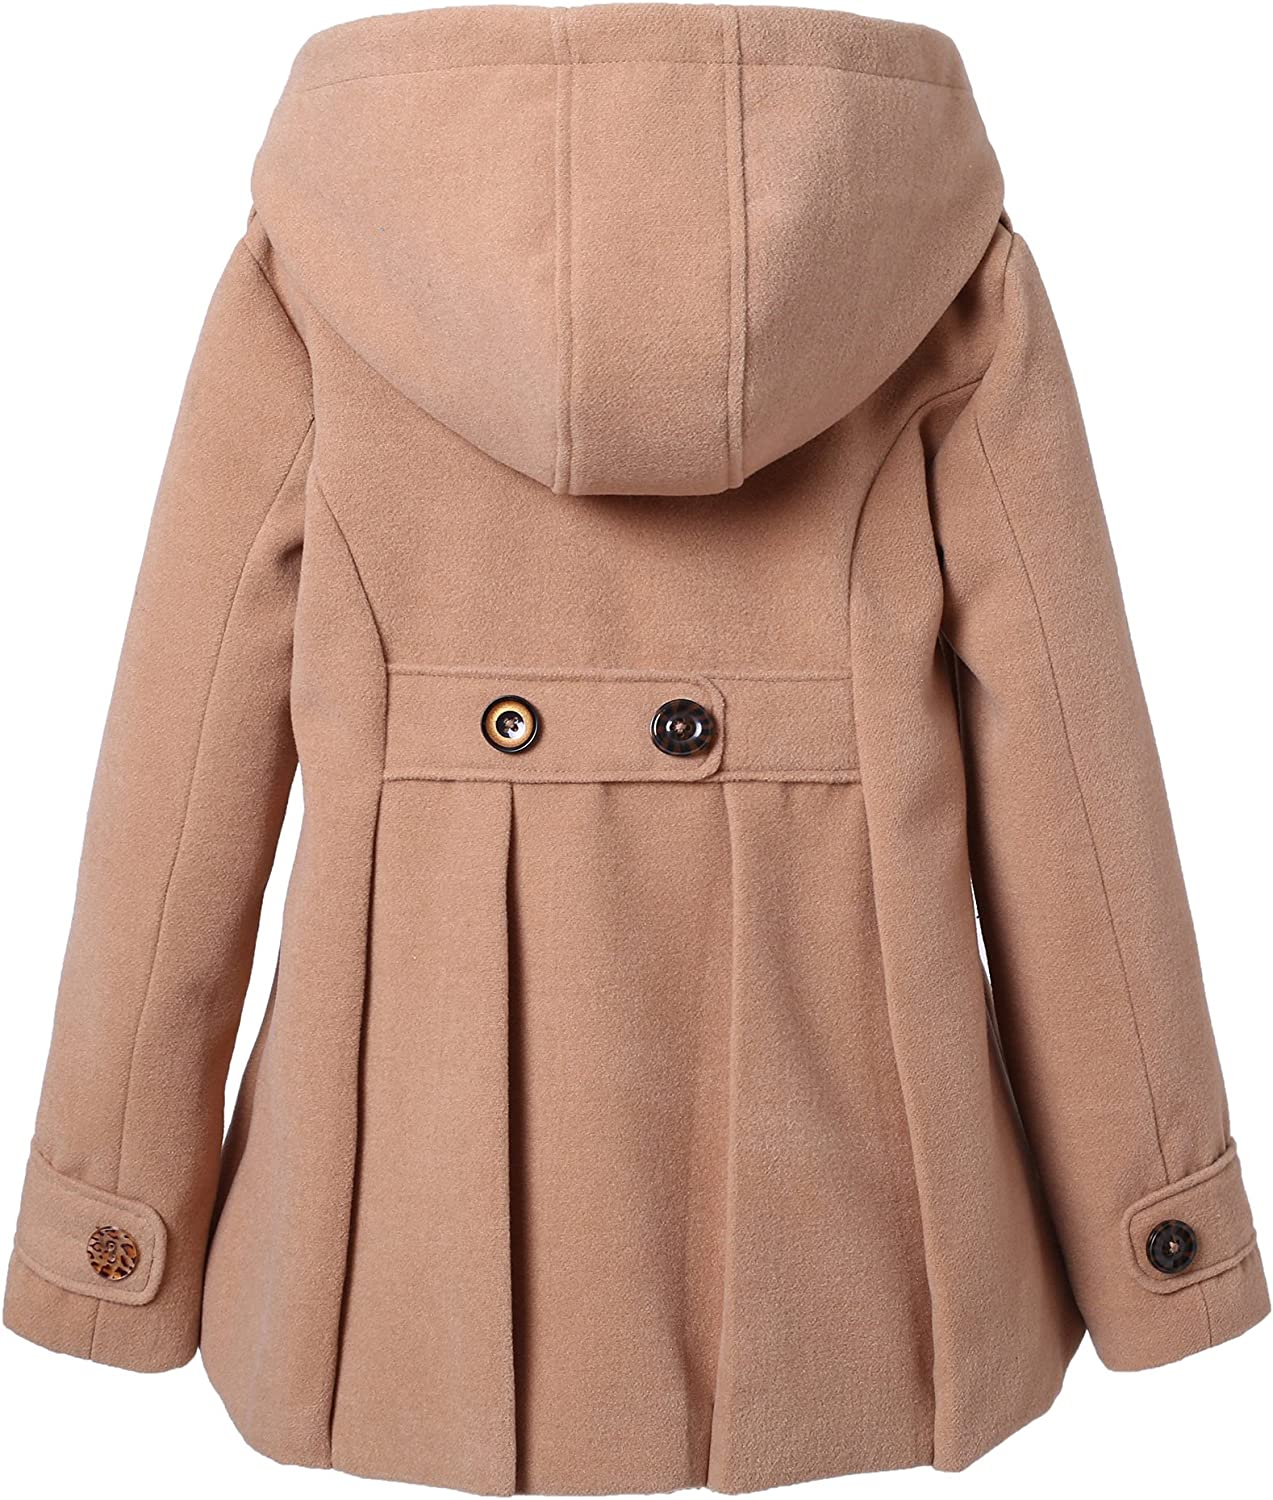 Richie House Girls Microfleece Jacket with Decorative Buttons RH1064